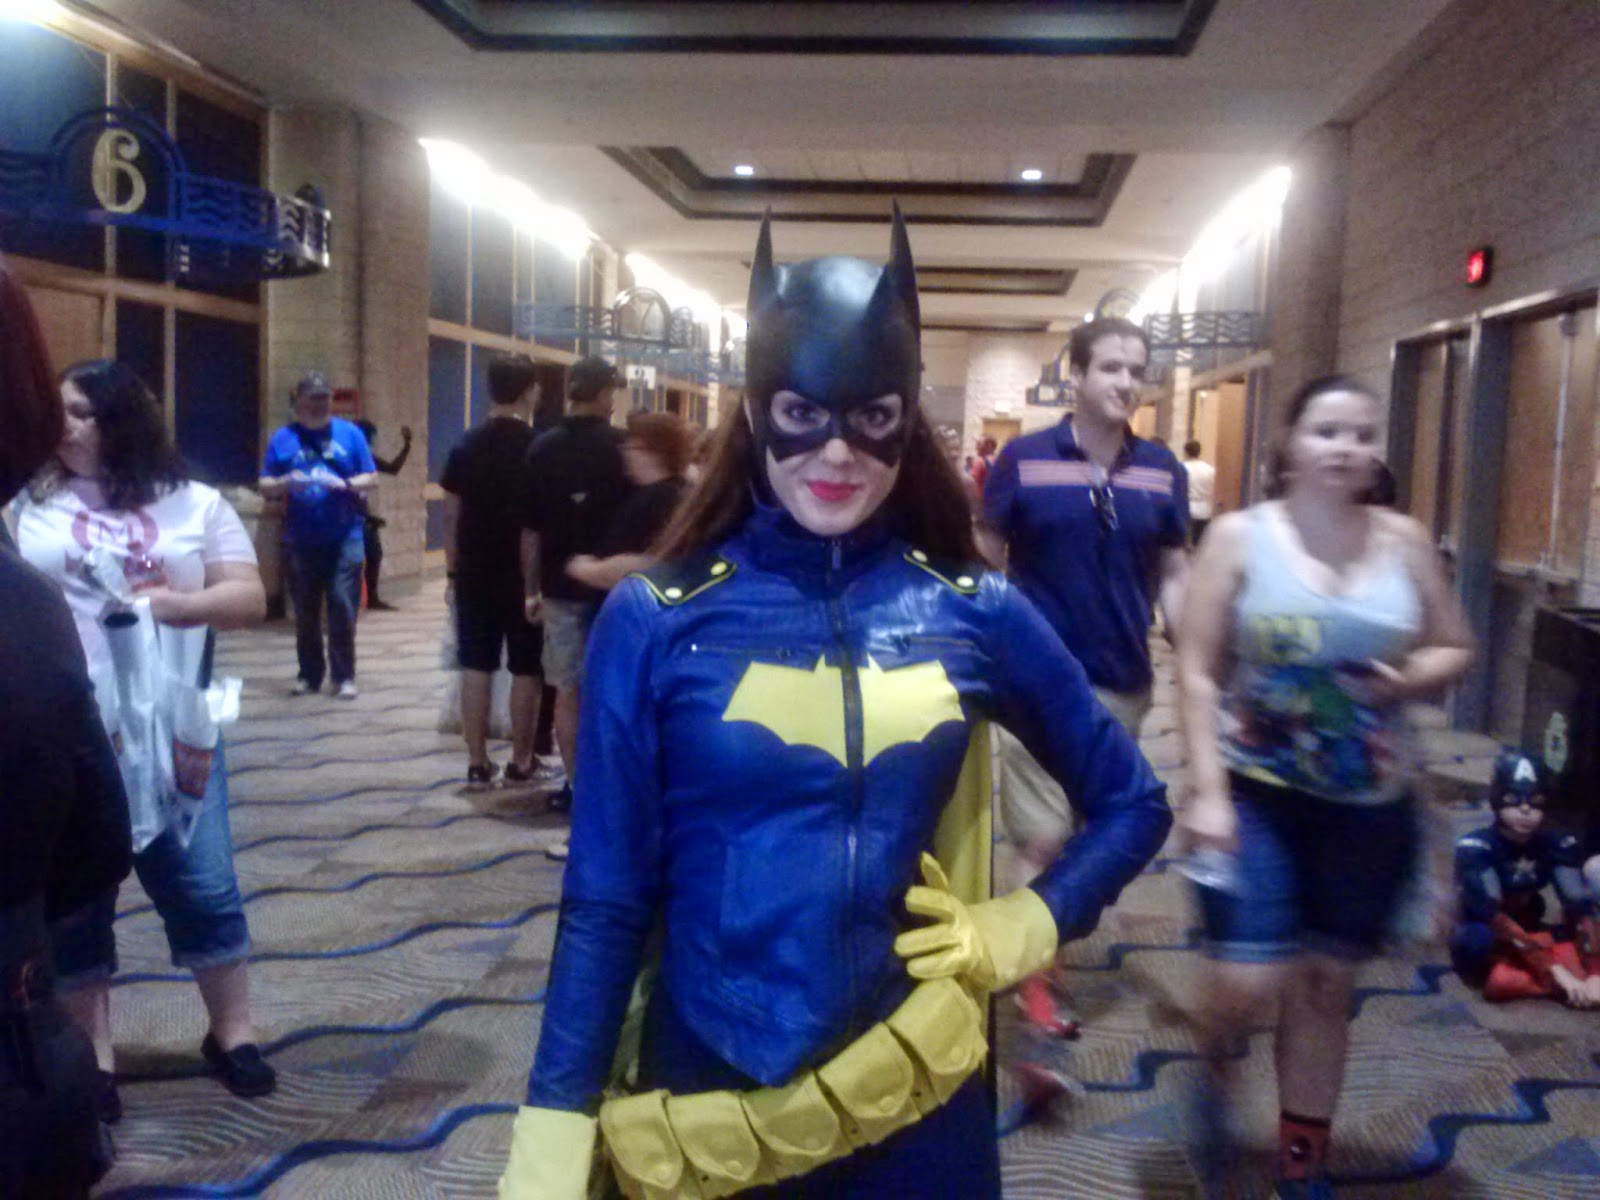 Alyson Larkin as Batgirl